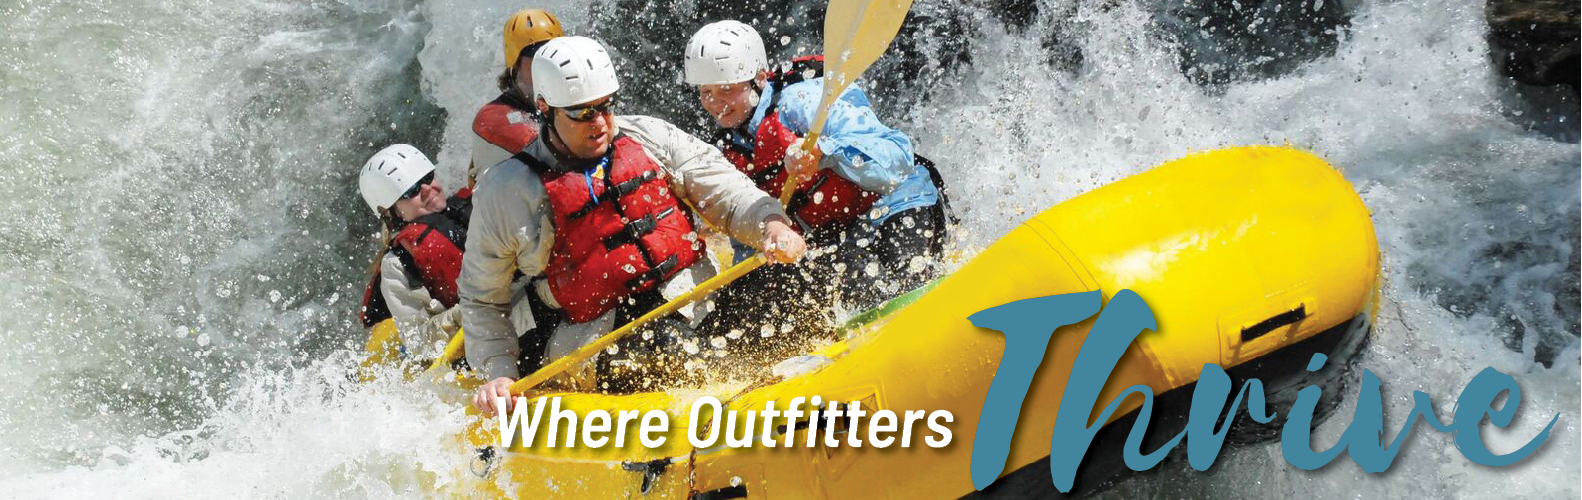 Guided Whitewater Rafting